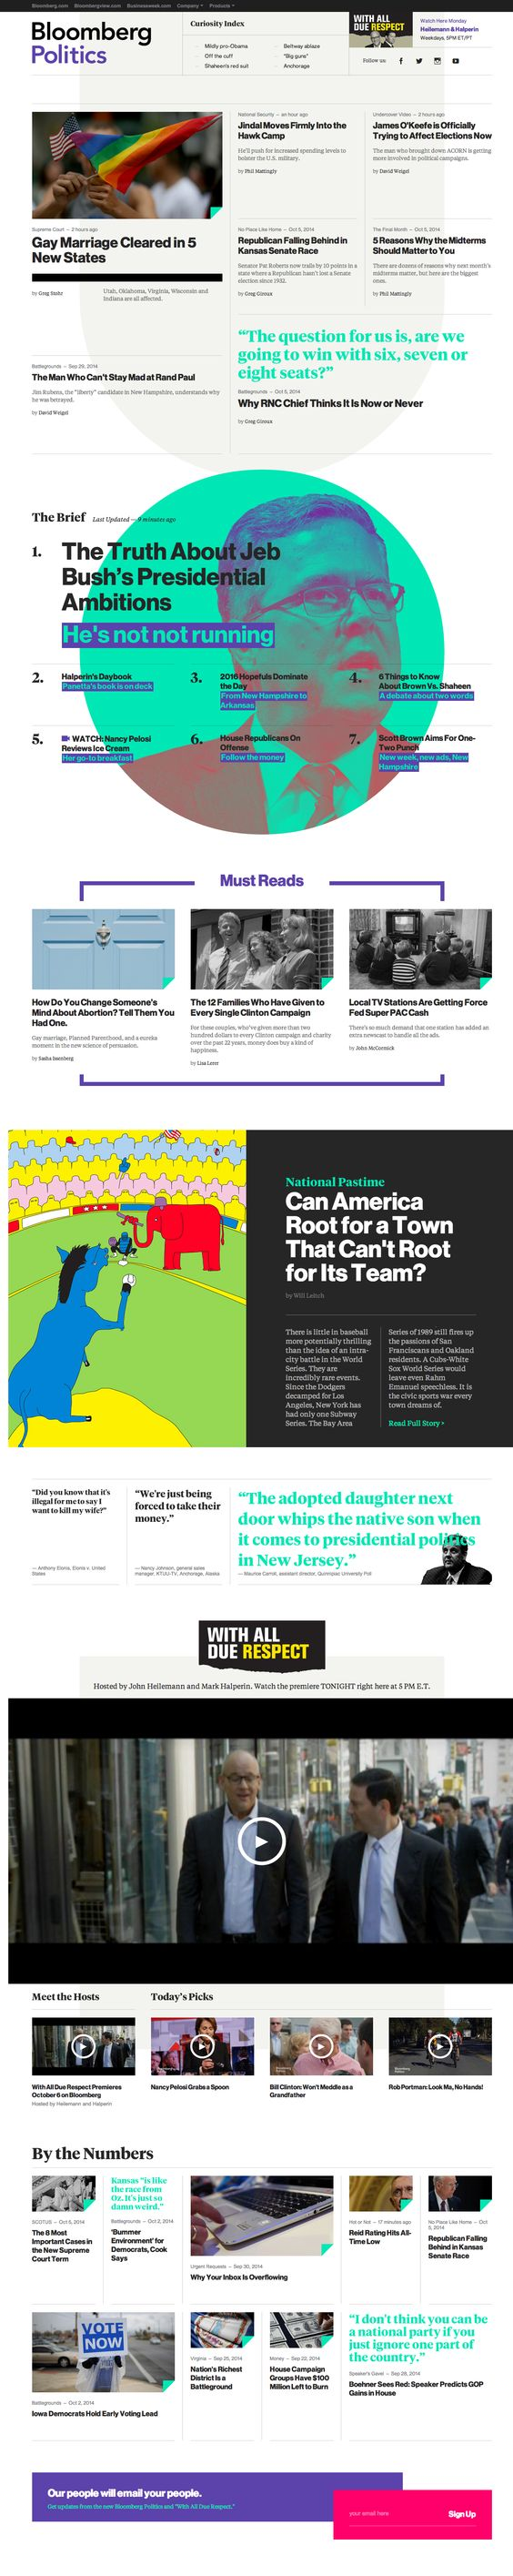 Bloomberg politics #grafica #web